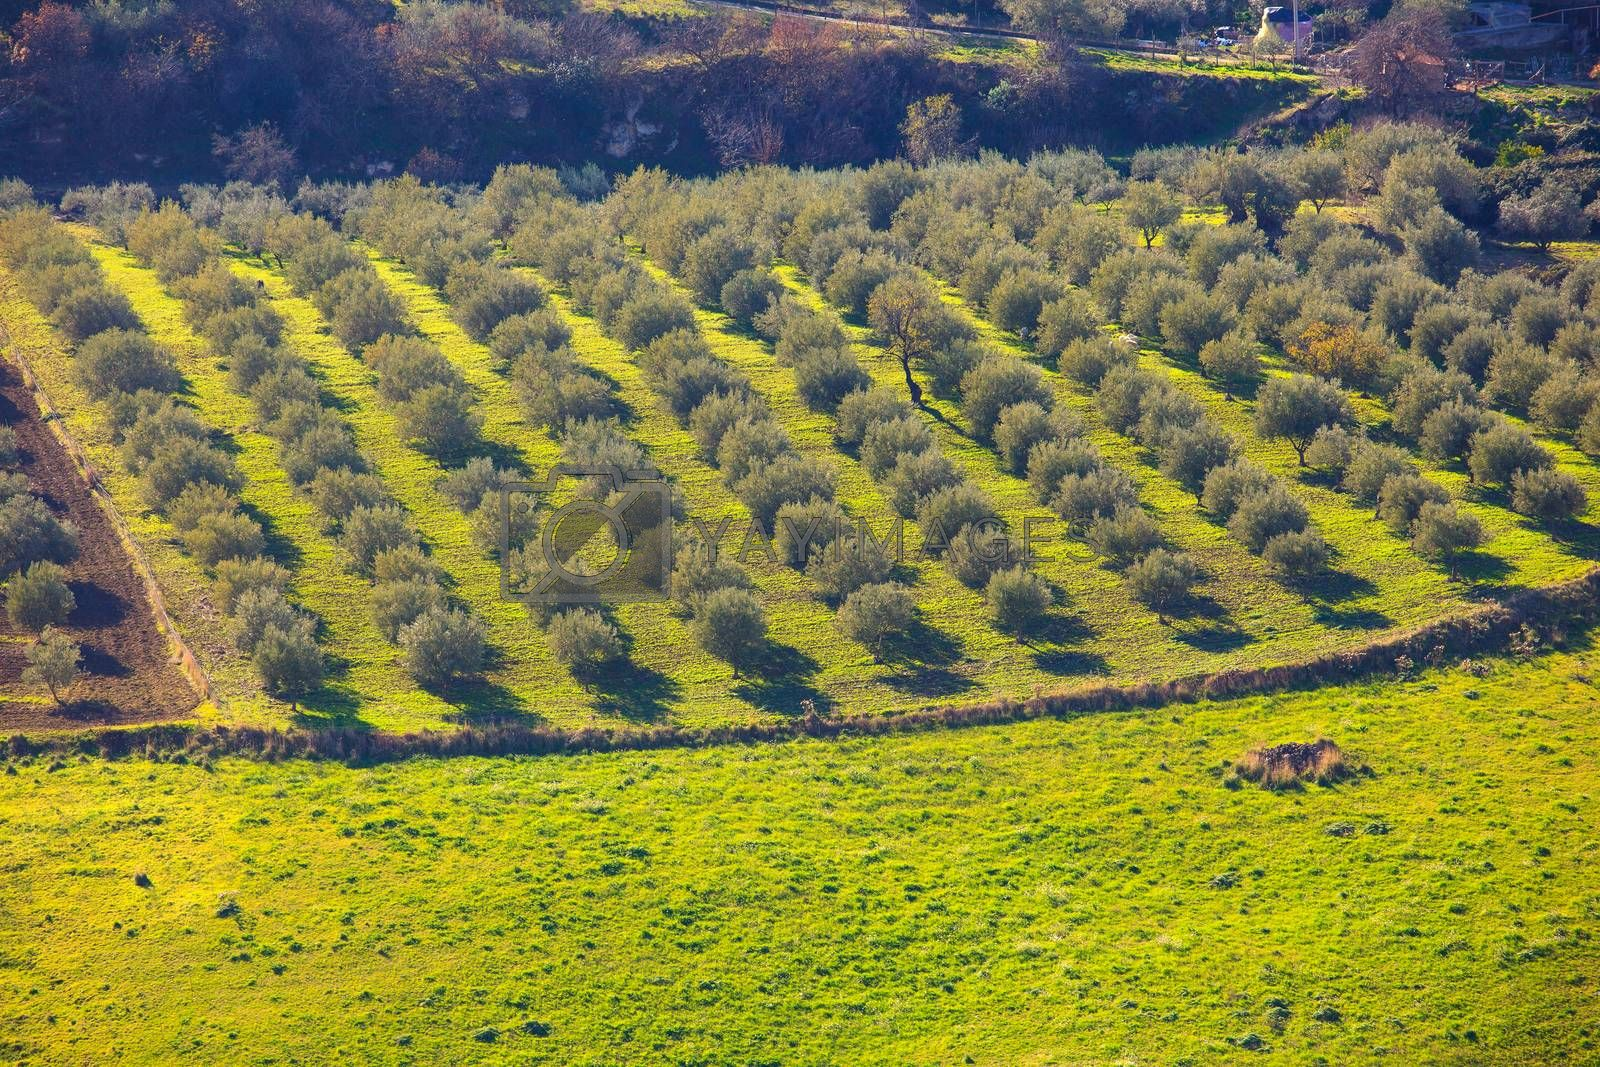 View of olive tree grove in the Leonforte countryside